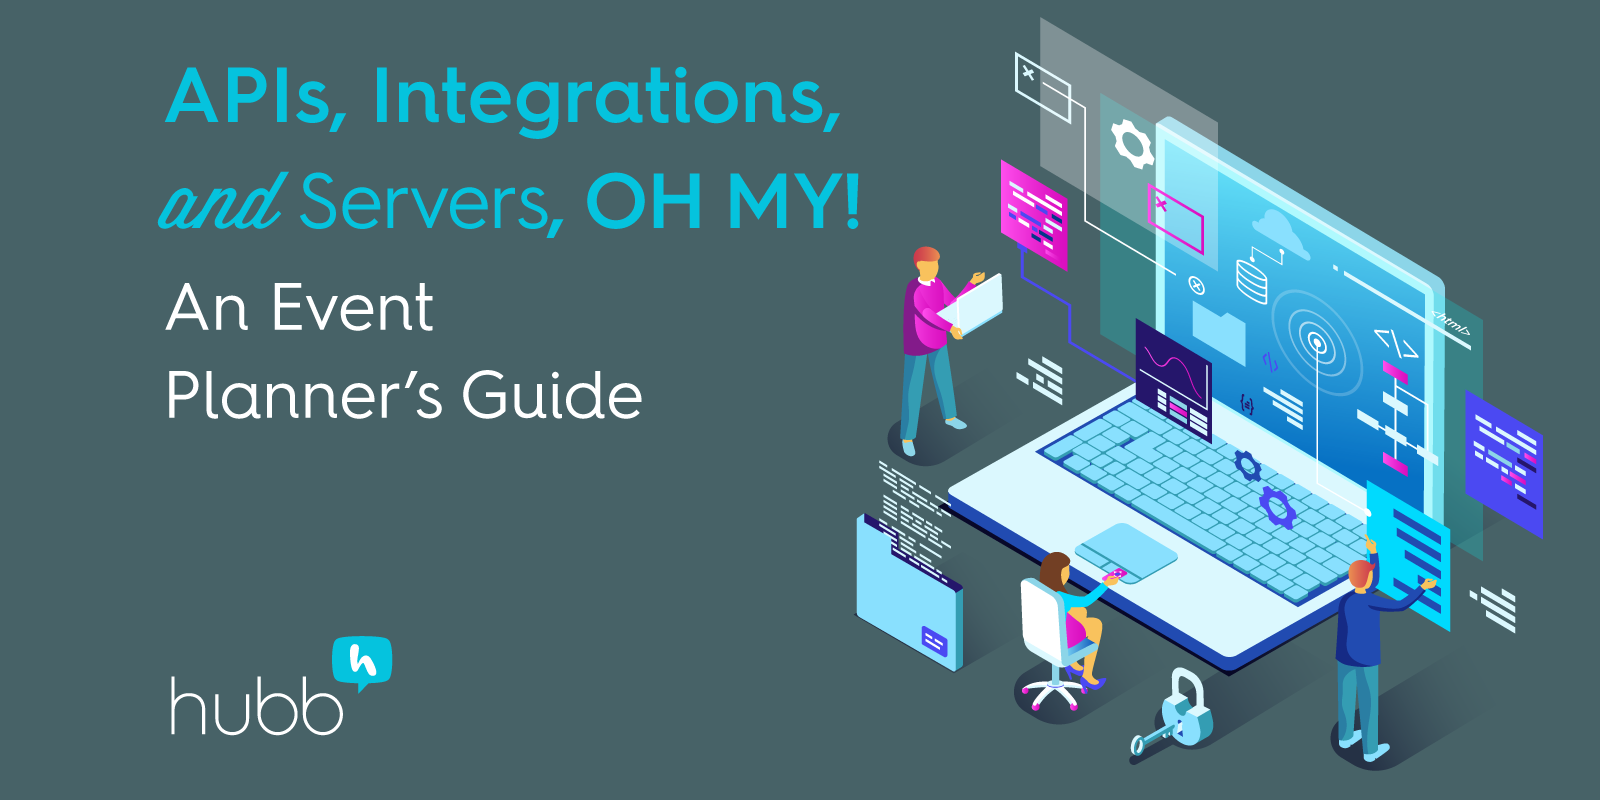 APIs, Integrations, and Servers, OH MY! An Event Planner's Guide